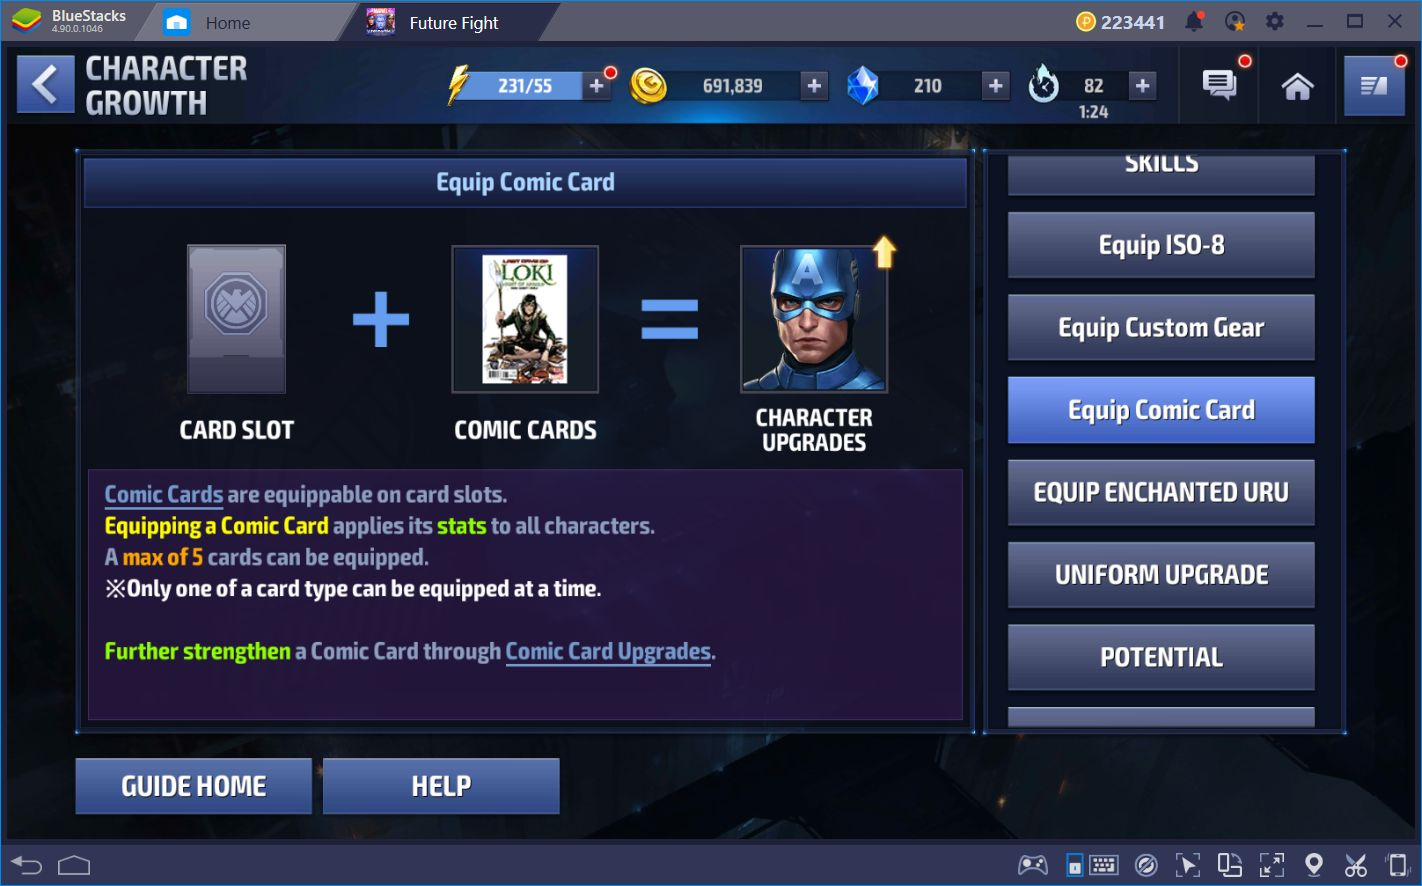 Marvel Future Fight: All You Need to Know About the Comic Cards